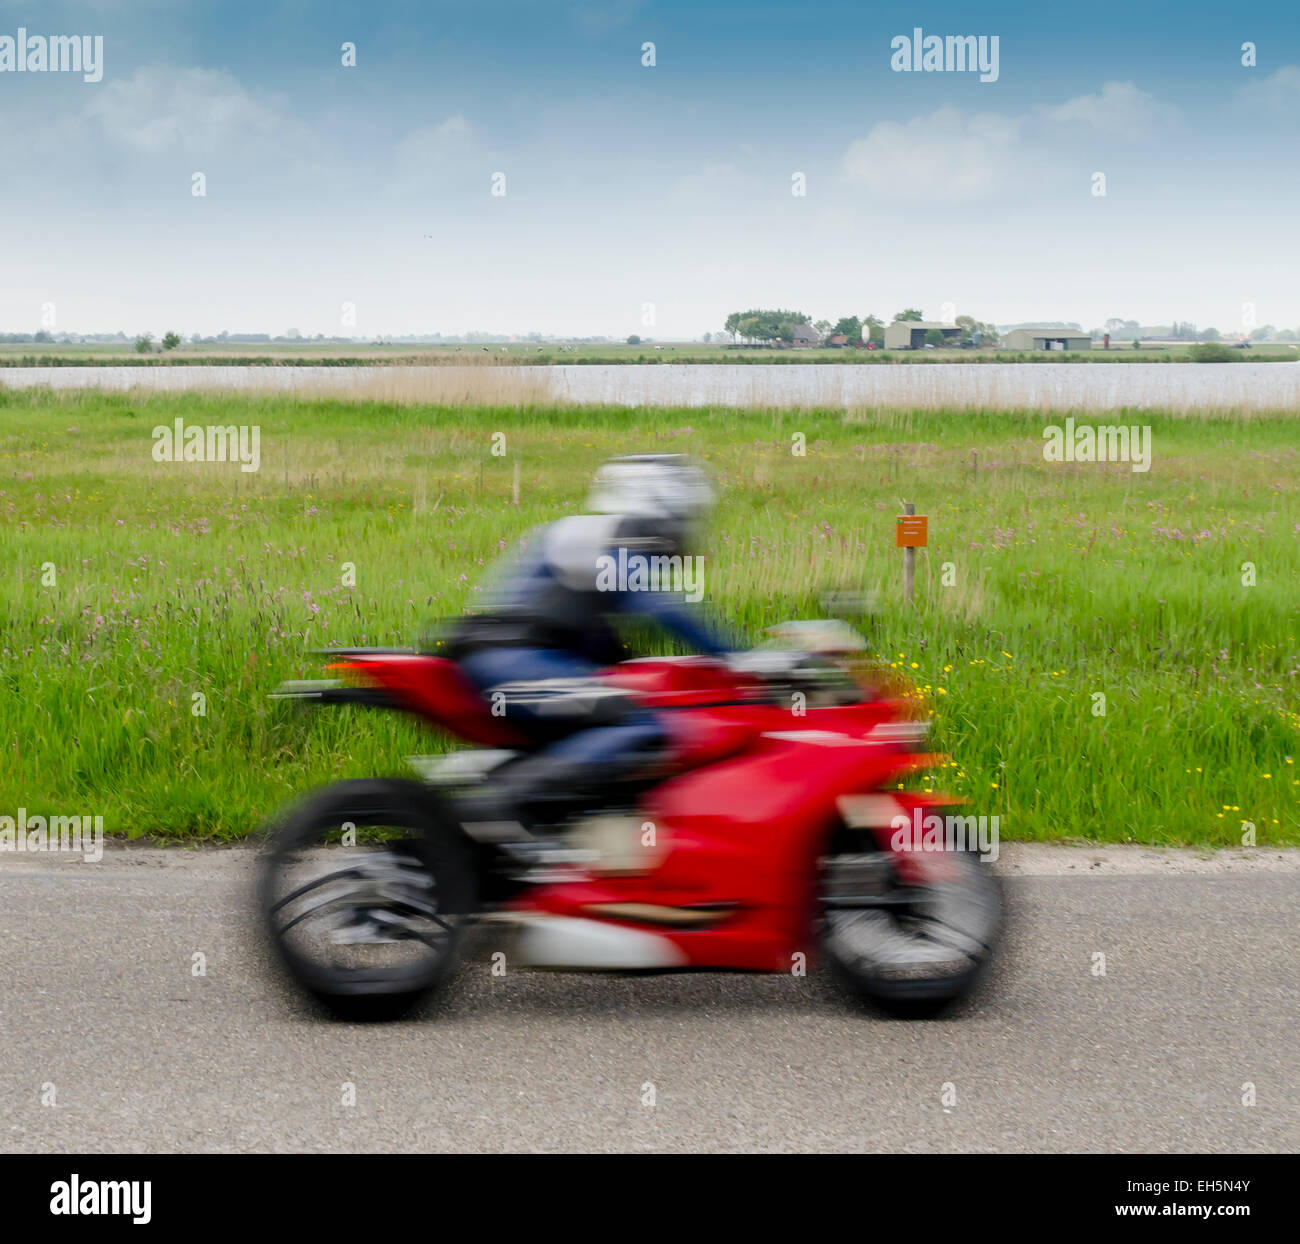 Fast motorcyclist on a red motorbike near e nature reserve of Staatsbosbeheer. - Stock Image